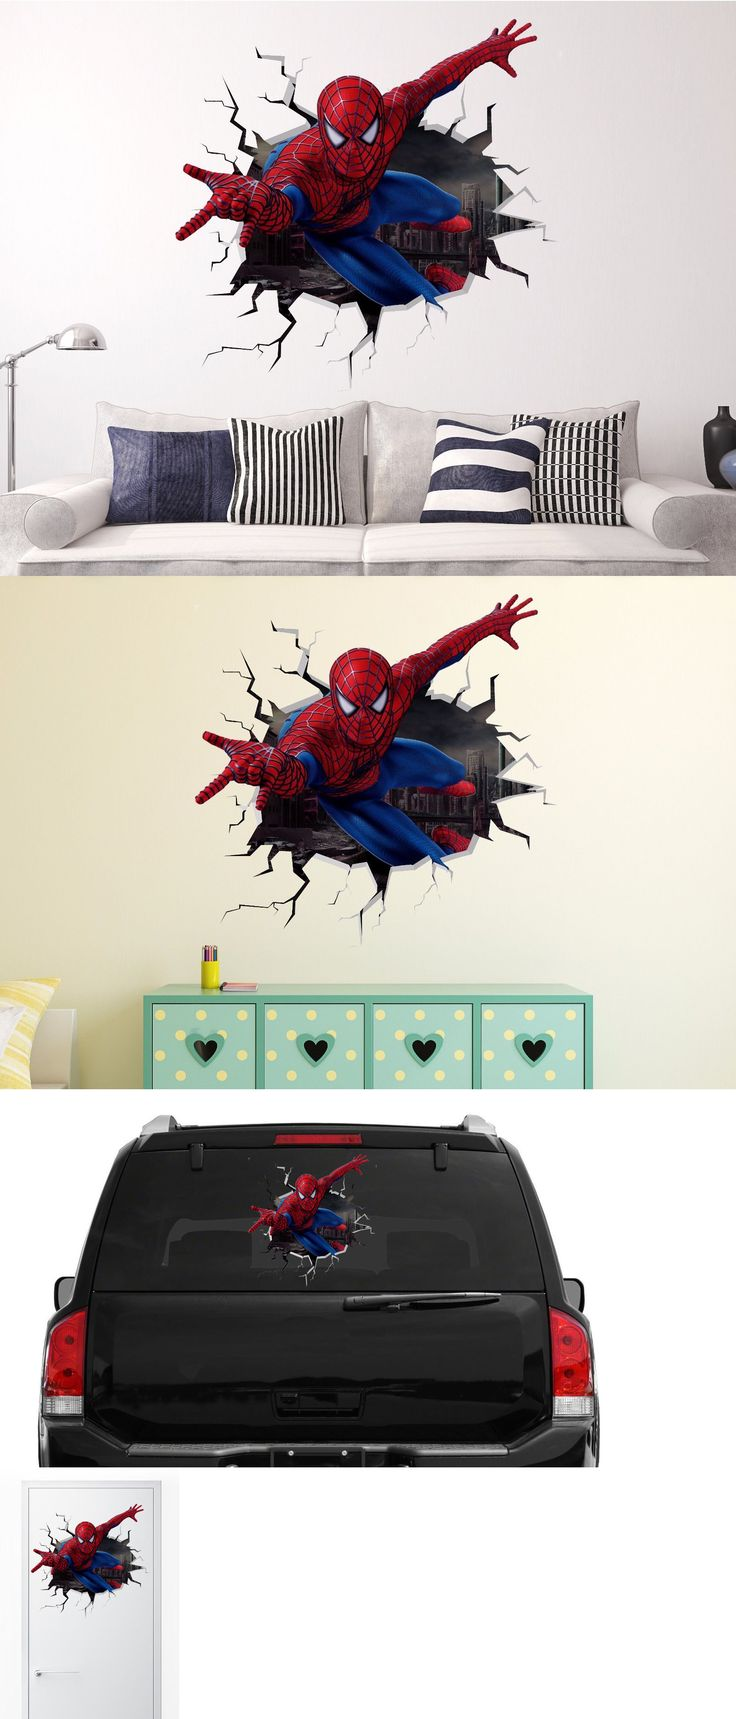 best 25 3d wall decals ideas on pinterest black tape project decals stickers and vinyl art 159889 spiderman wall decal sticker vinyl decor car door window